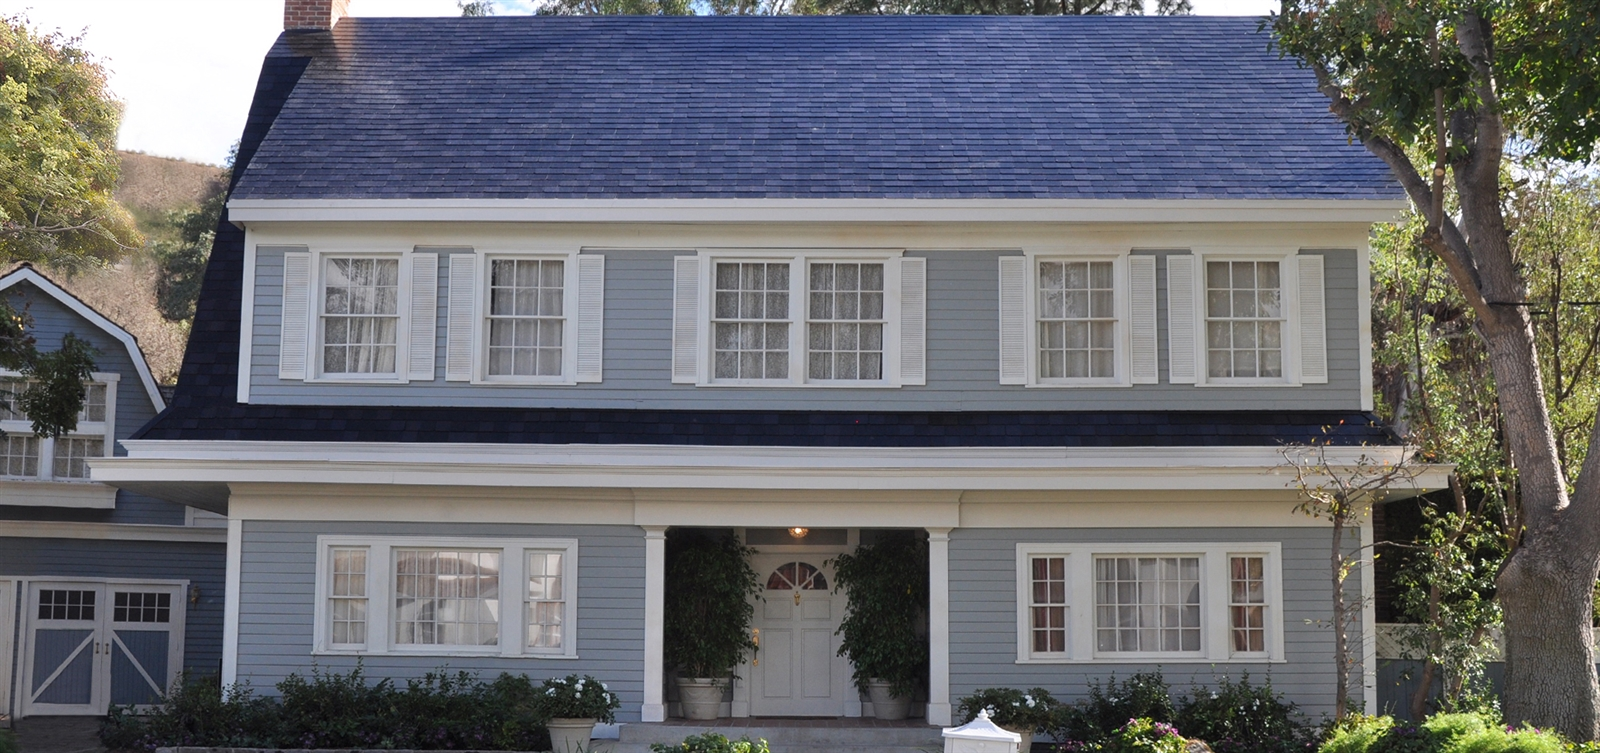 One of the solar roof styles unveiled at Elon Musk's SolarCity presentation.